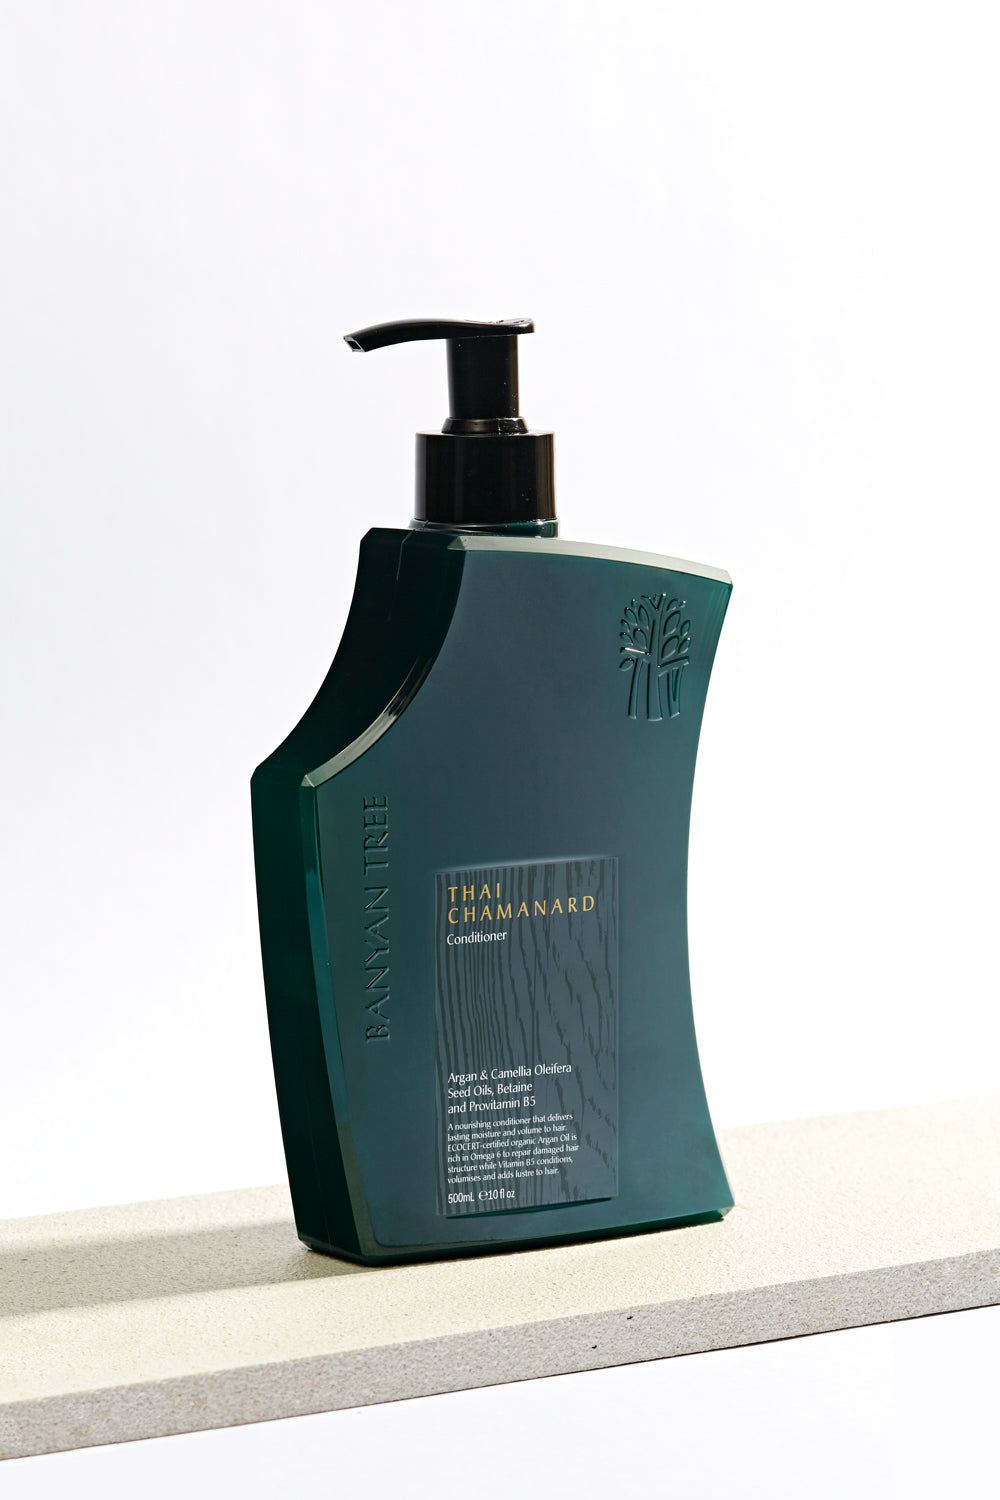 Thai Chamanard Hair Shampoo - Banyan Tree Gallery